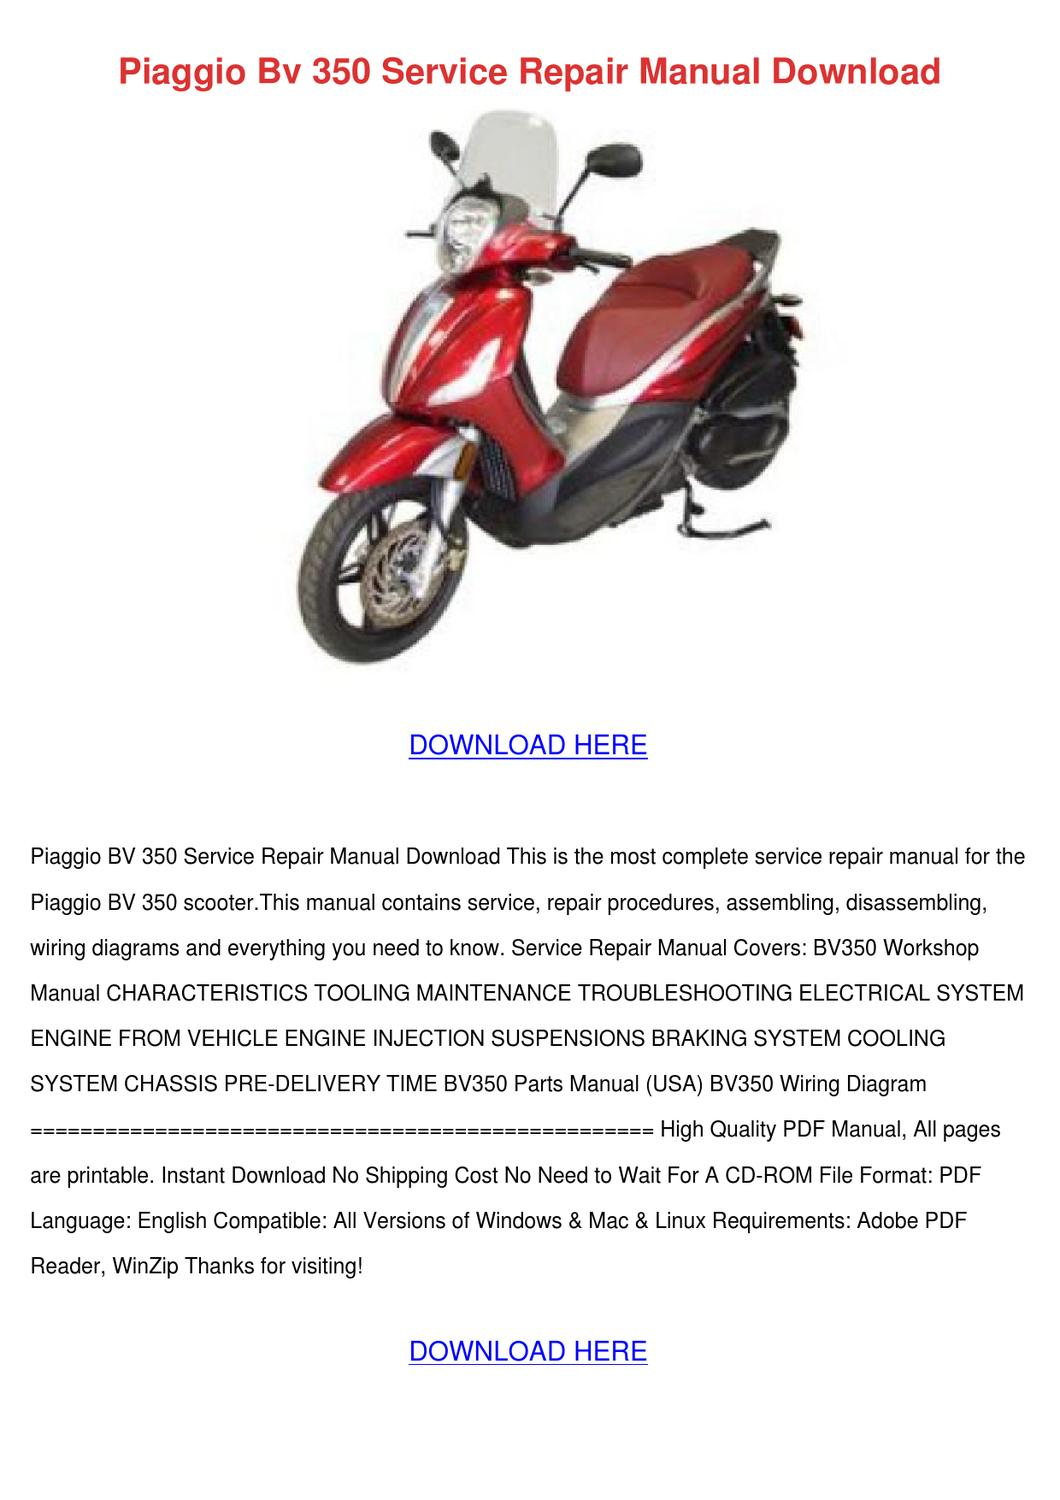 Piaggio Bv 350 Service Repair Manual Download By Doncohn